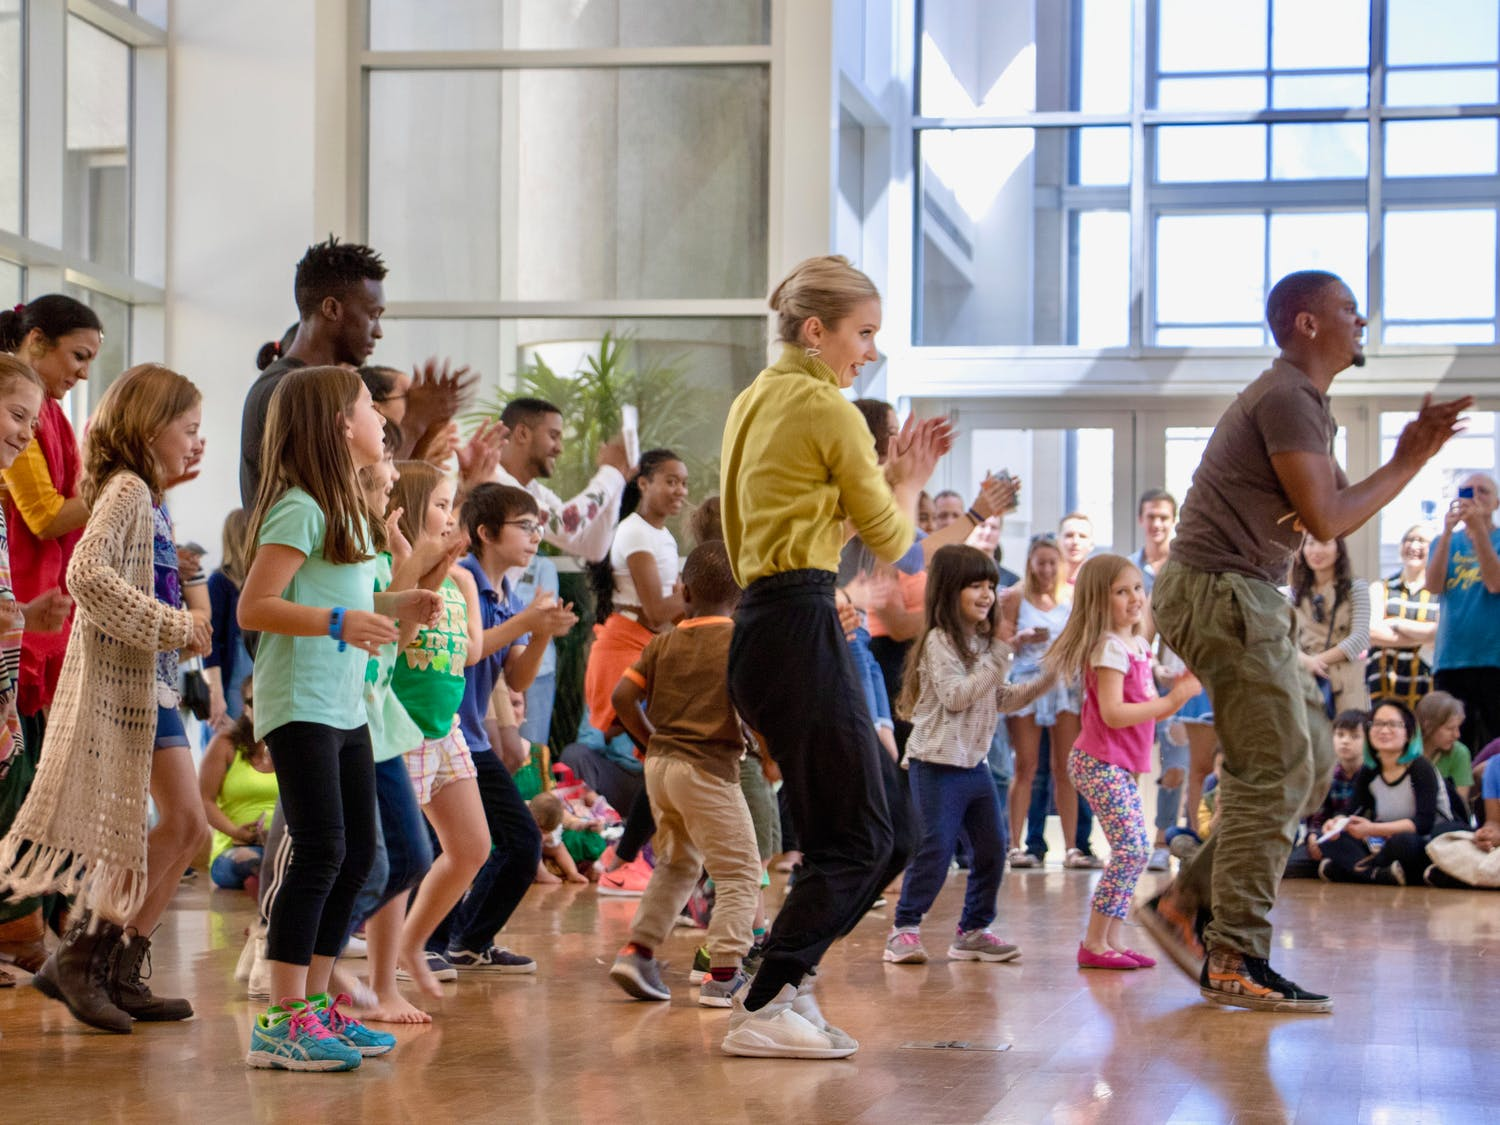 Photos from theHip Hop Dance performance at the Harn Museum of Dance event.